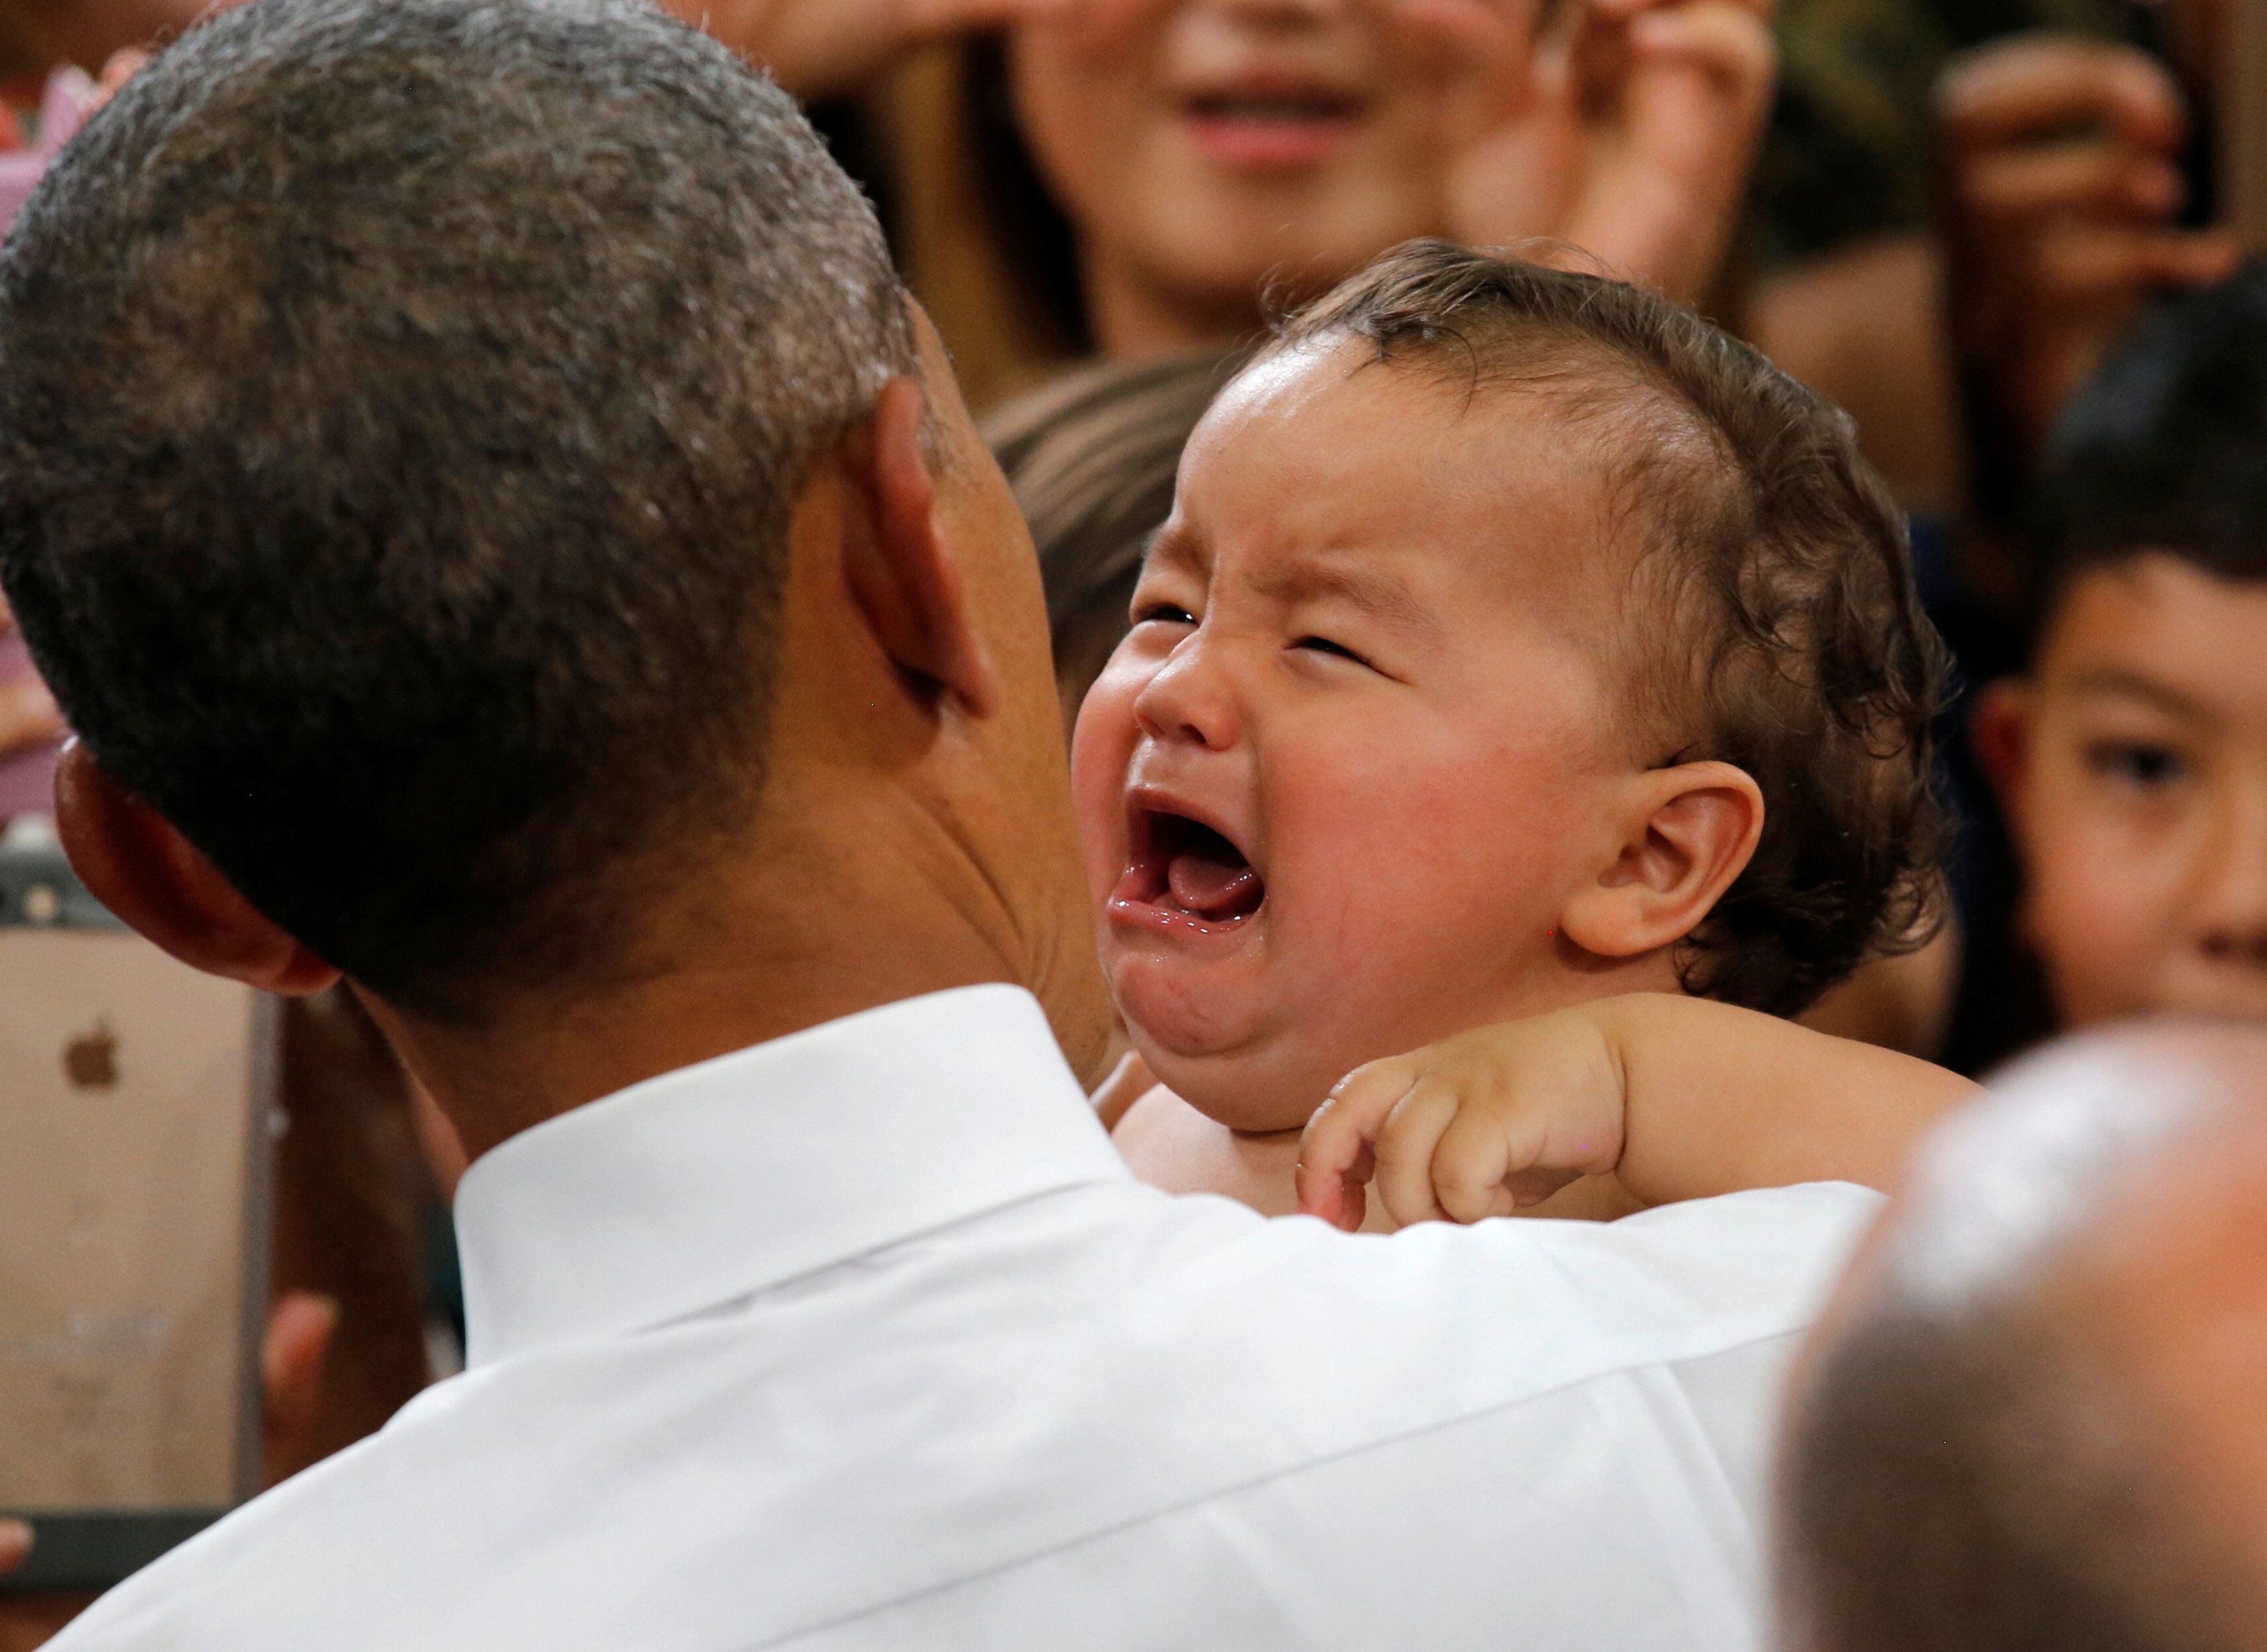 A baby cries as U.S. President Barack Obama holds the baby during his visit at Iwakuni Marine Corps Air Station, enroute to H